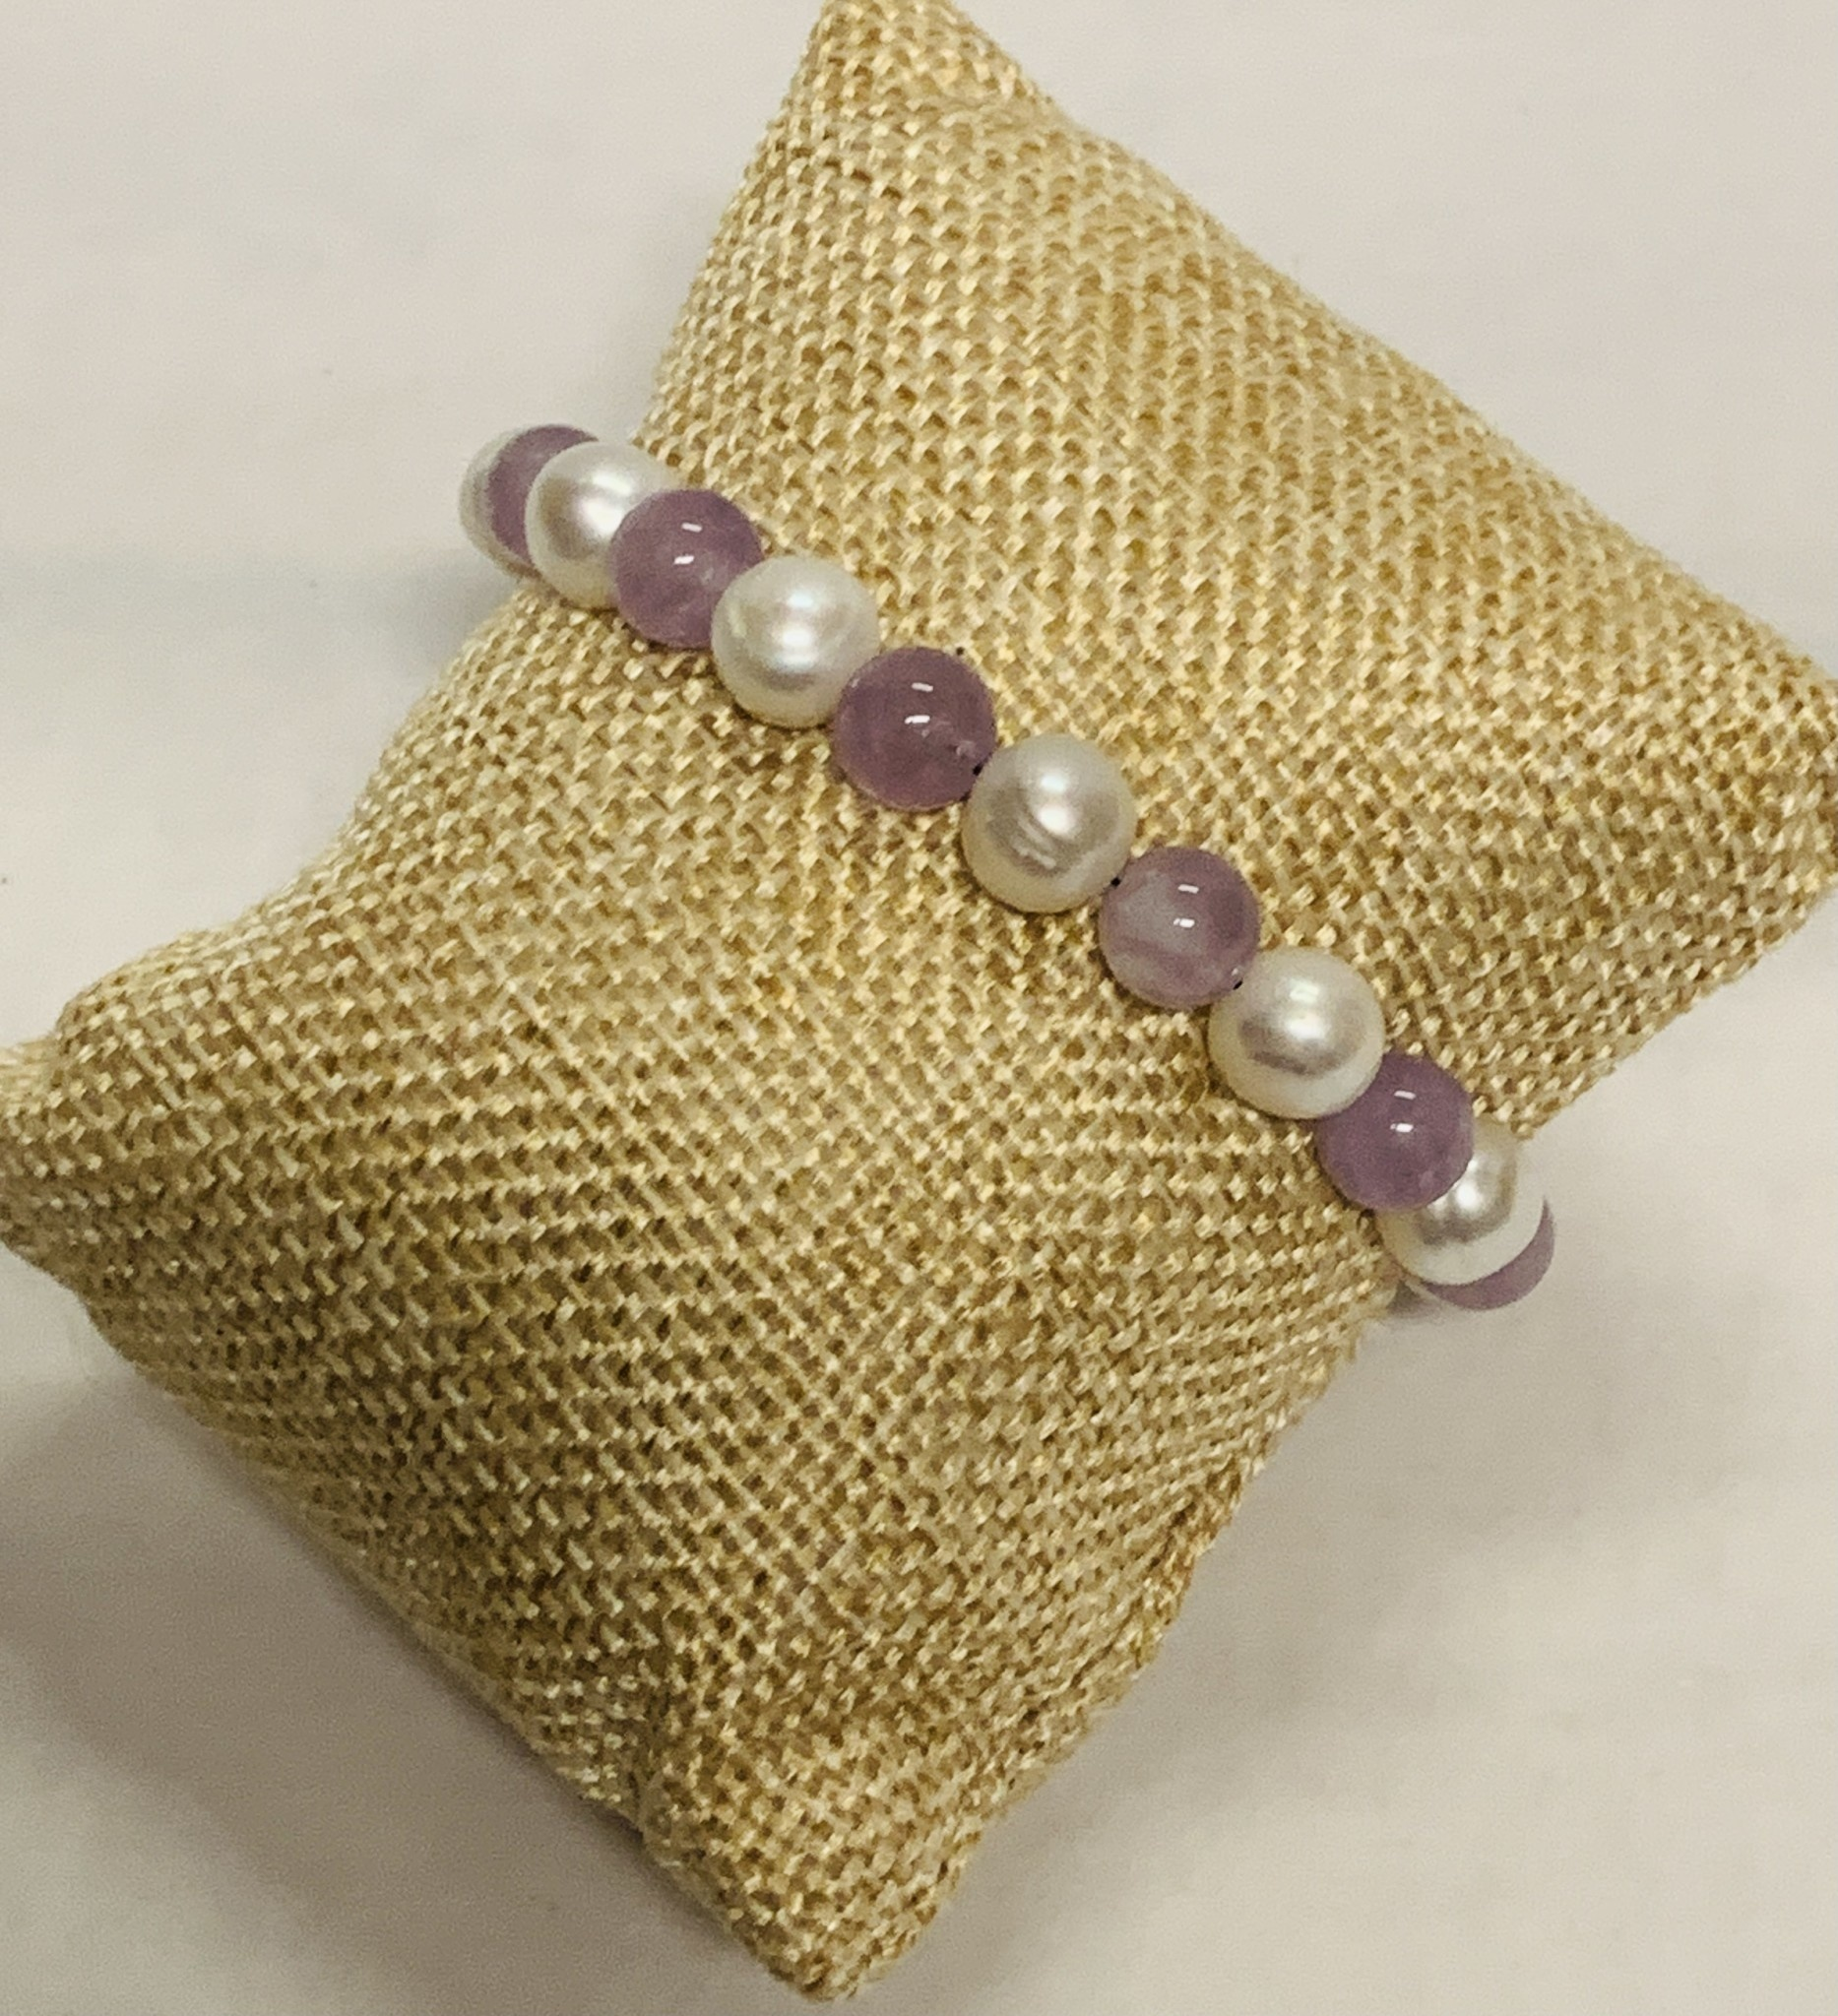 Manmade Hawaii BRACELET: AMETHYST/WHITE FW PEARL W/MAGNETIC CLASP